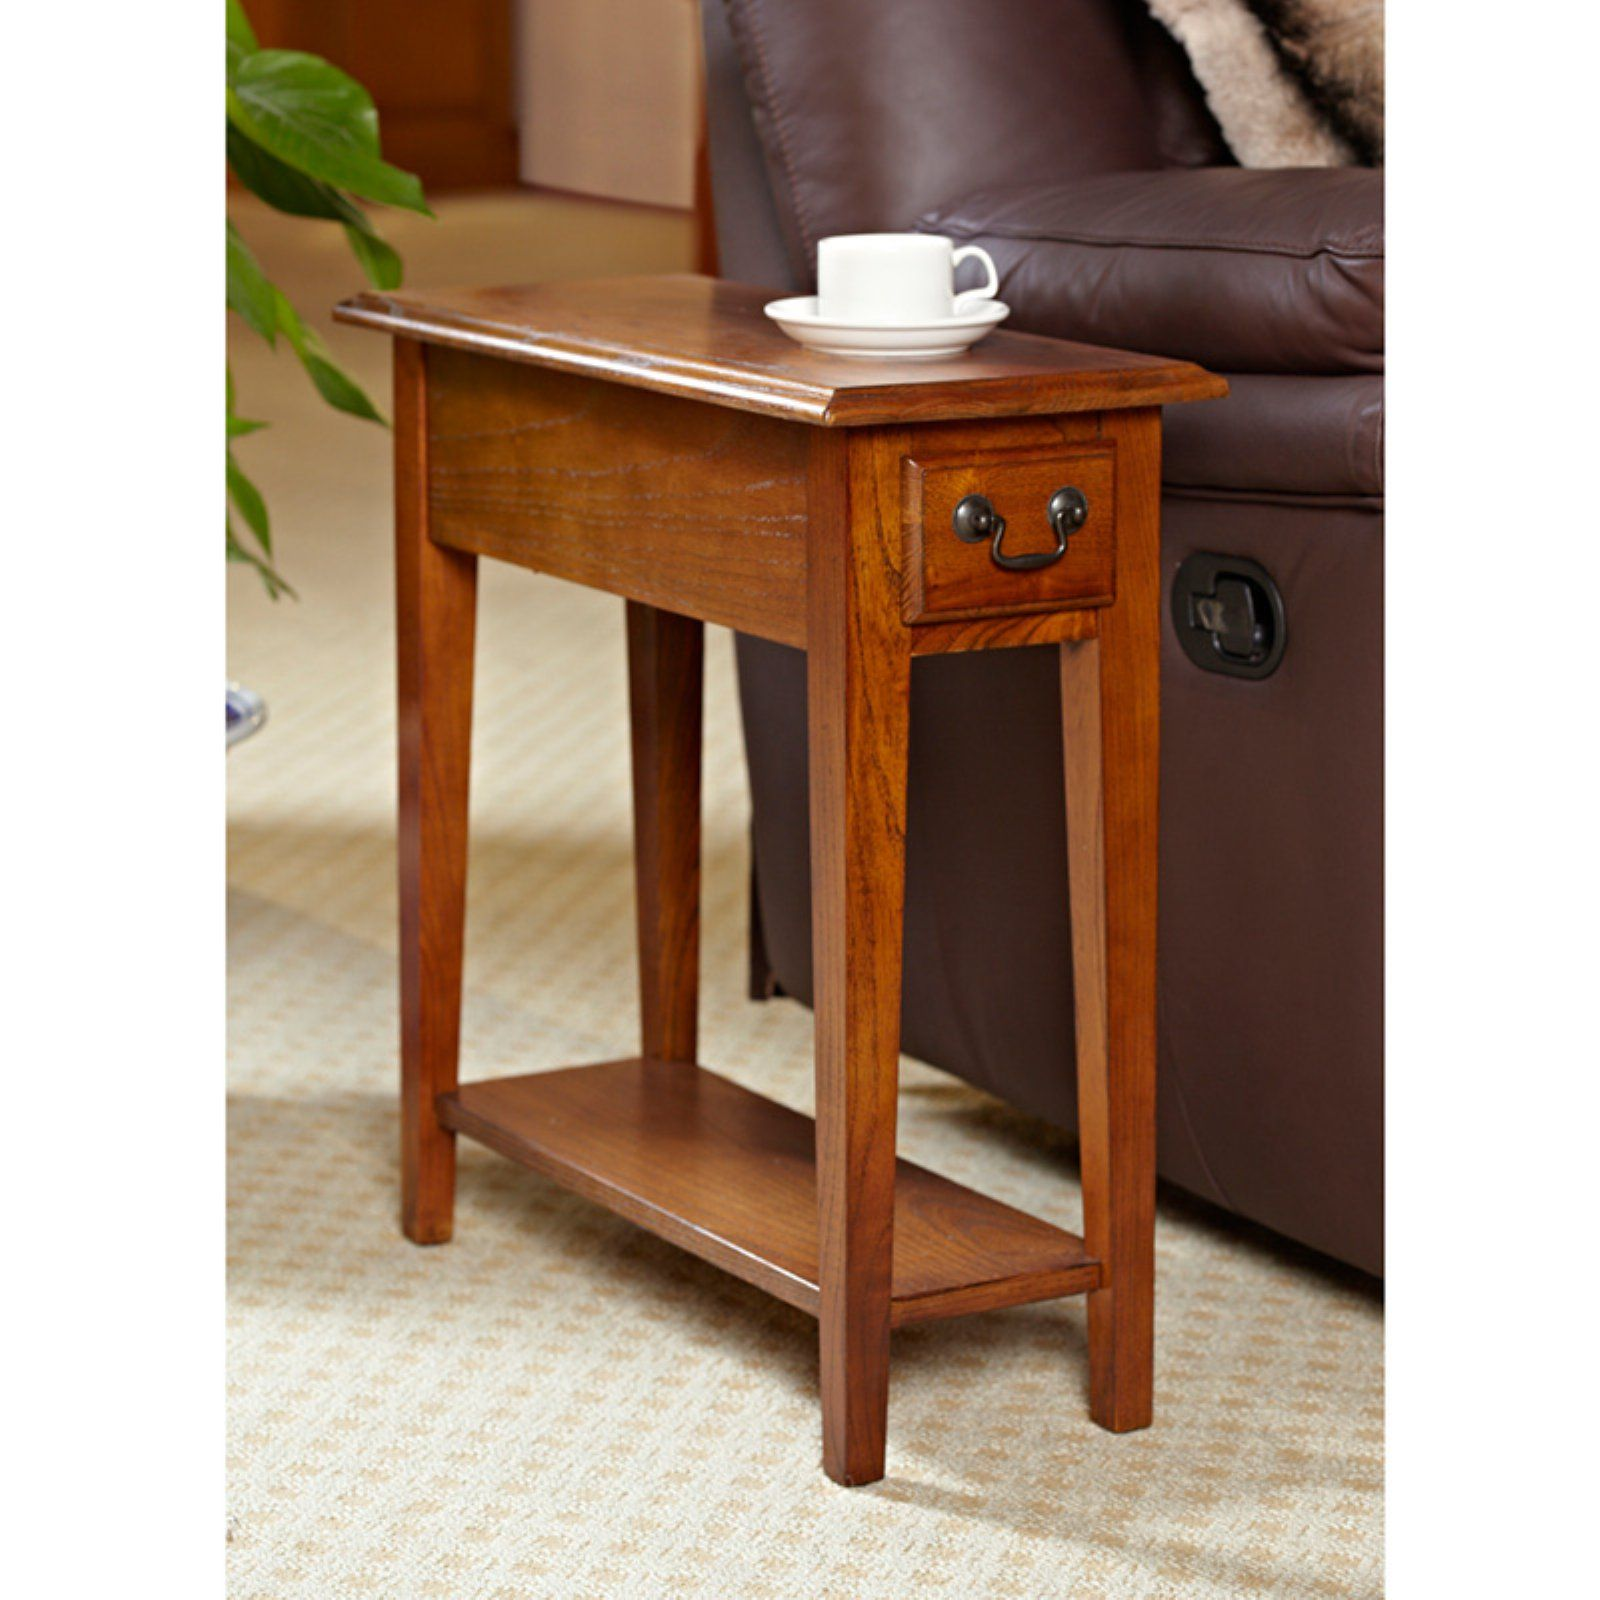 Leick Home Hardwood 10 Inch Chairside End Table In Medium Oak Walmart Com In 2021 Wood End Tables Small End Tables Furniture 10 inch end table